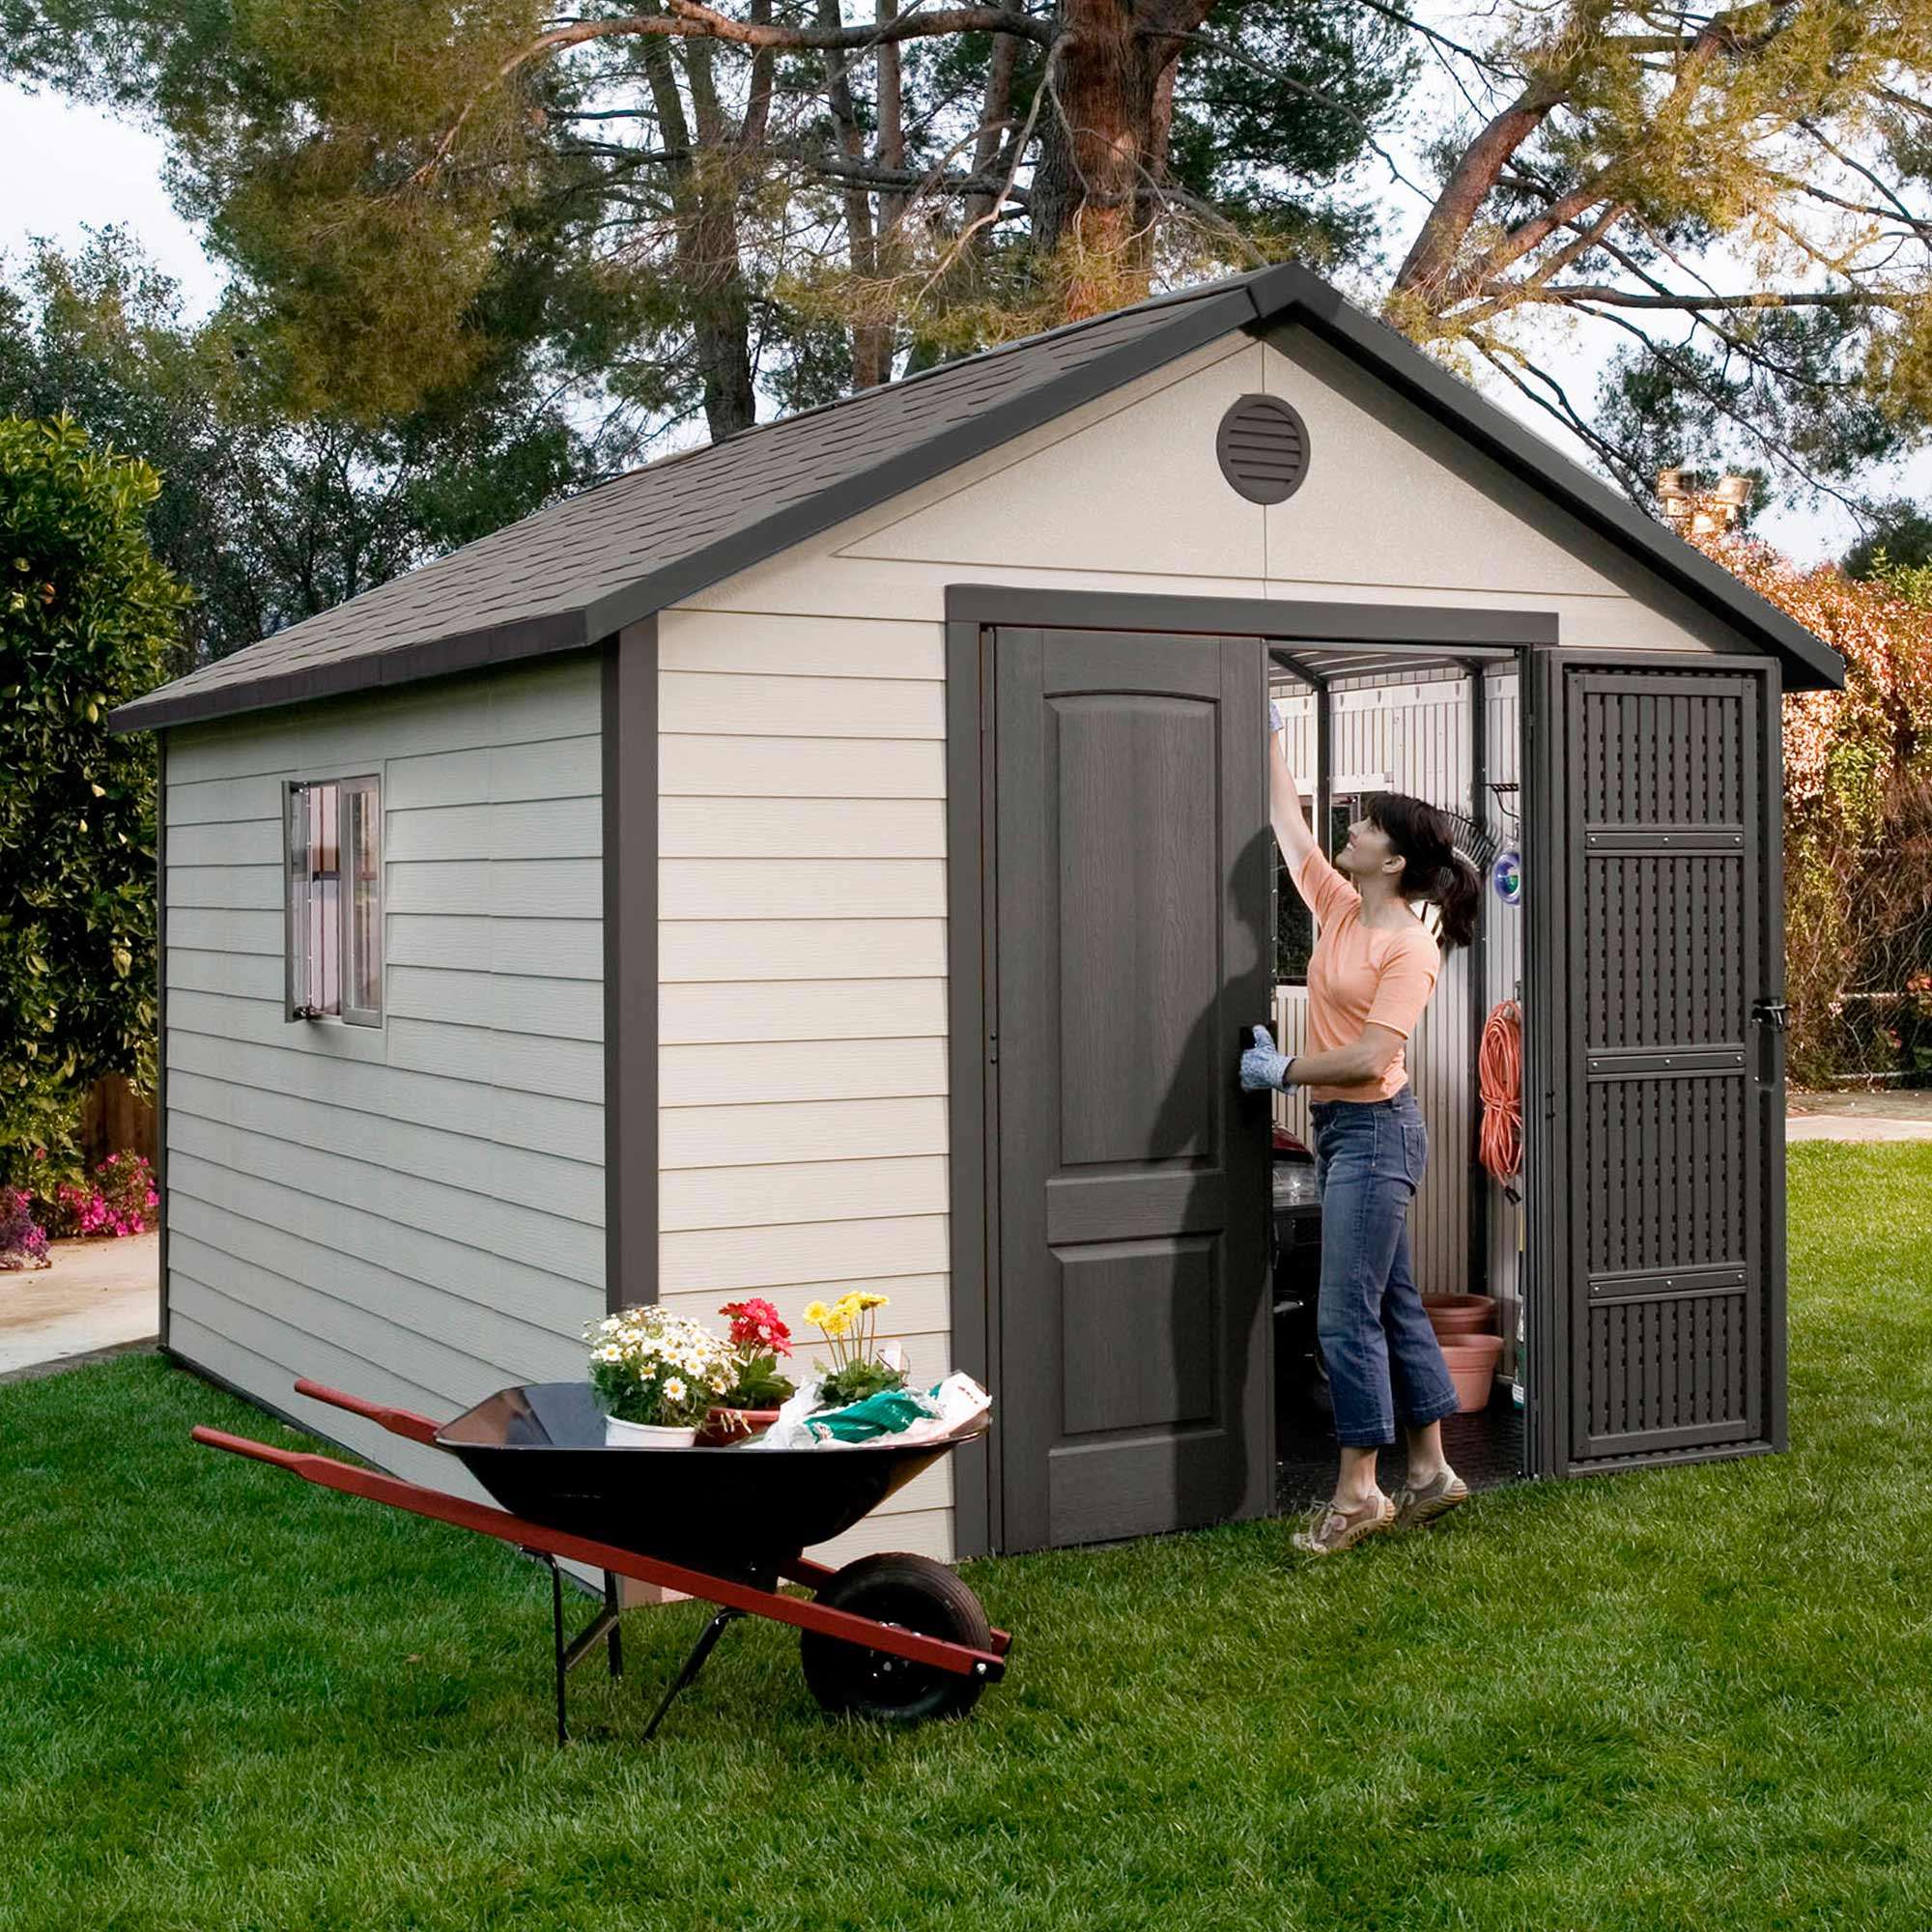 Image of 11' x 21' Lifetime Heavy Duty Plastic Shed (3.16m x 6.2m)